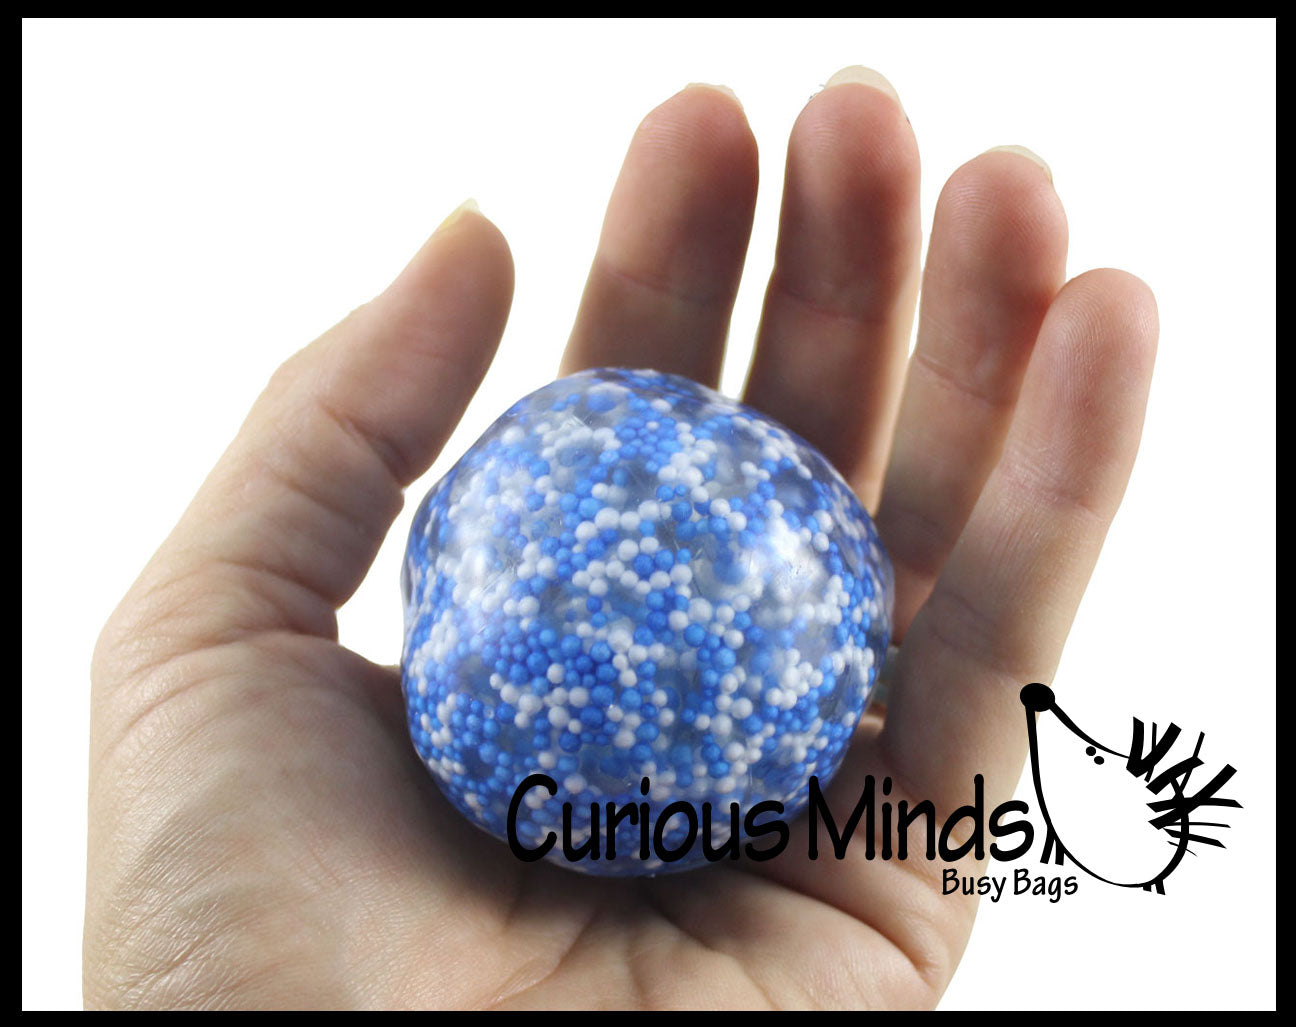 Squishy Gooey Shape-able Squish ot 1 Large Confetti Bead Mold-able Stress Ball